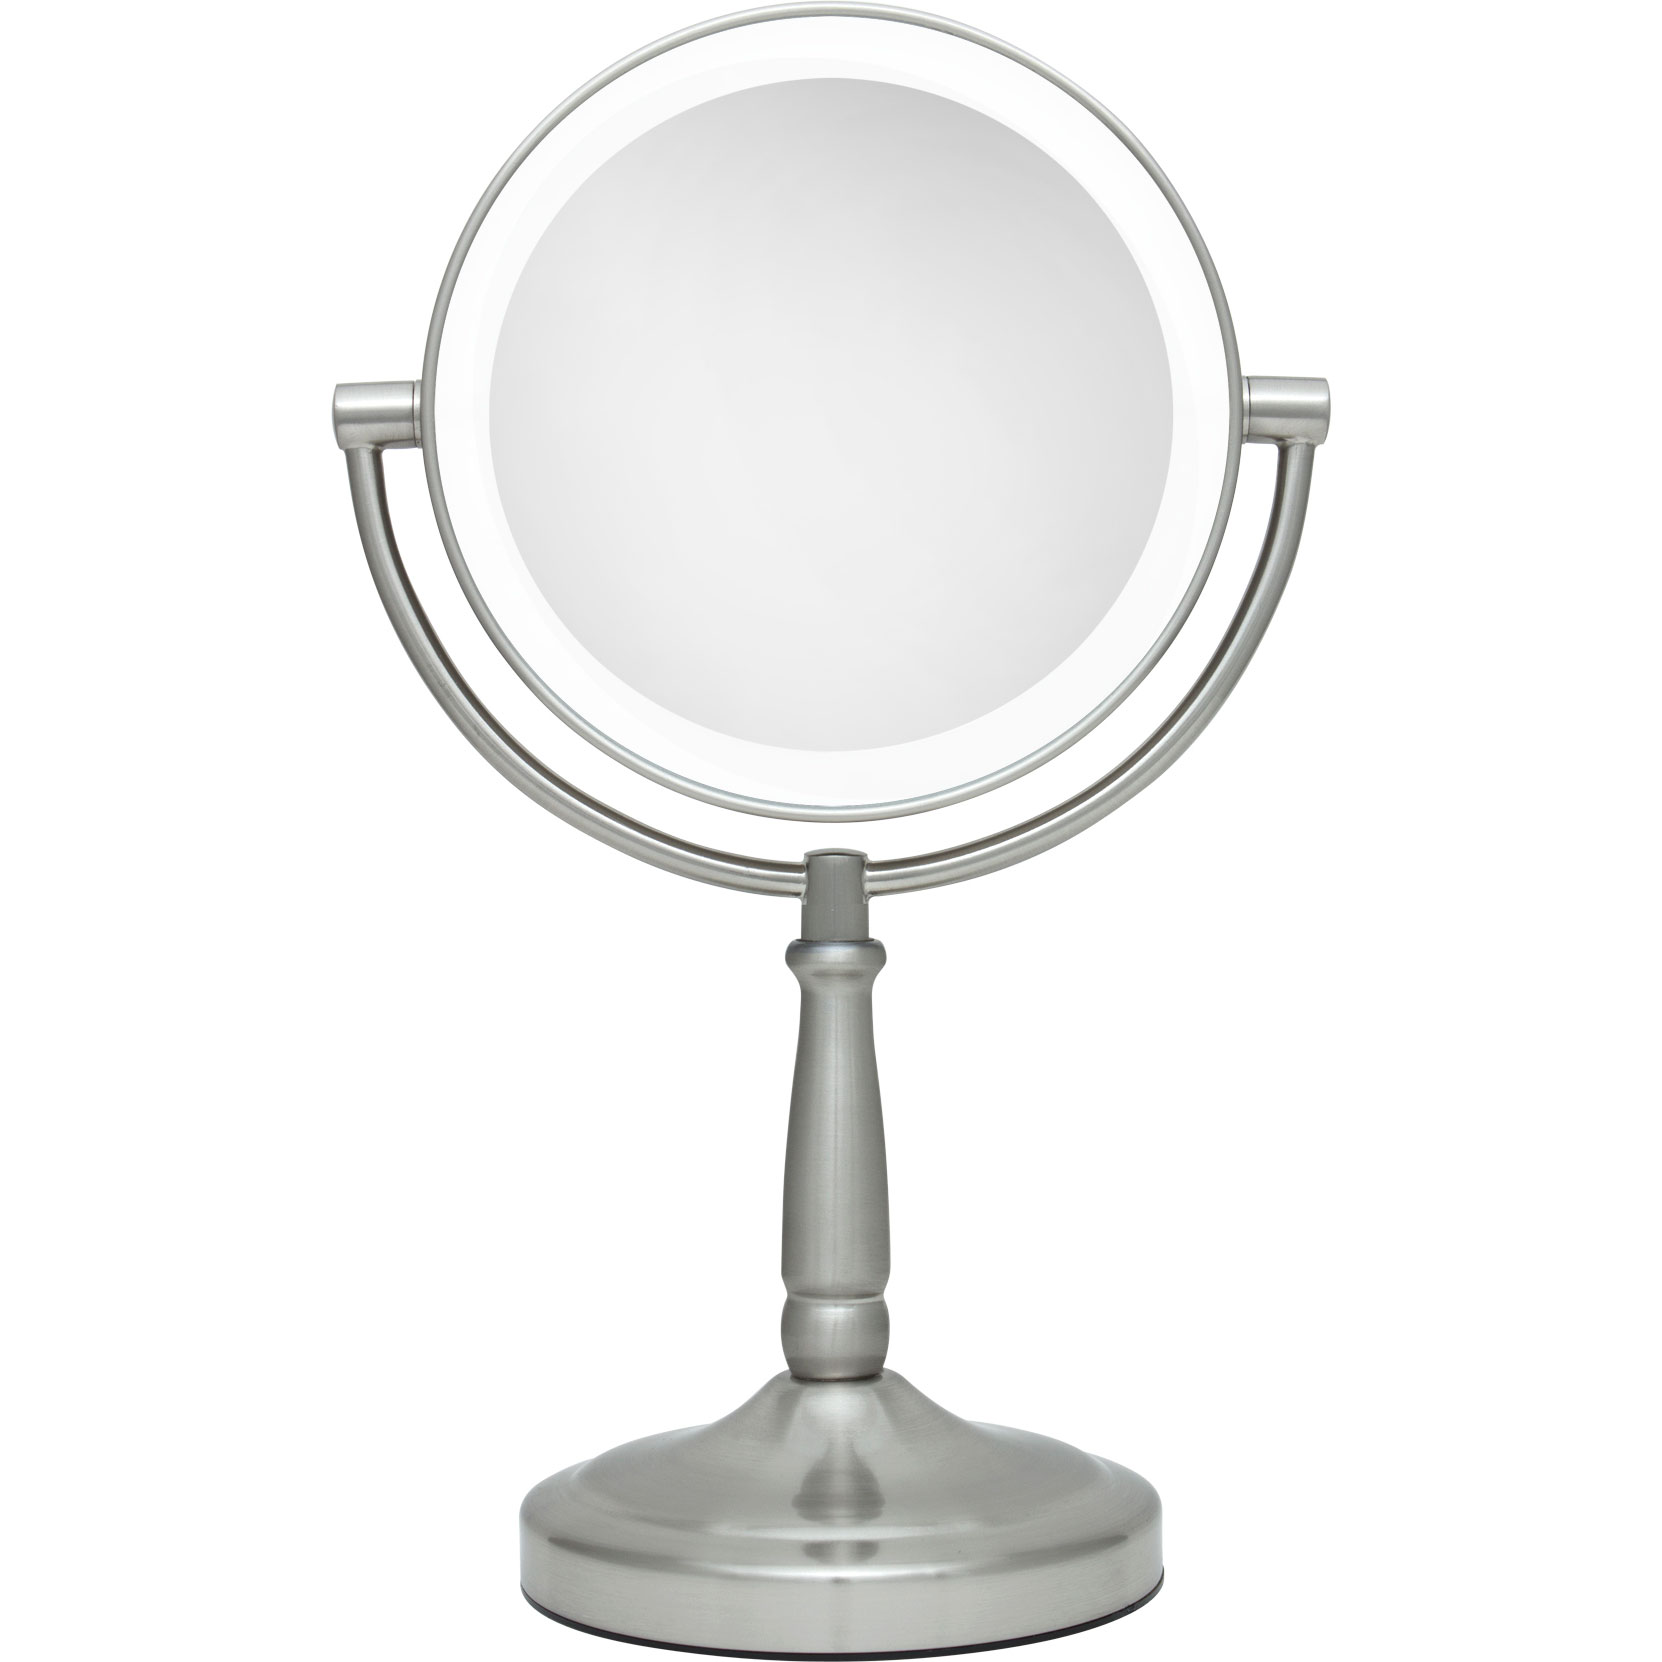 5x/1x Cordless Dual Sided LED Light Vanity Mirror by Zadro LEDV45